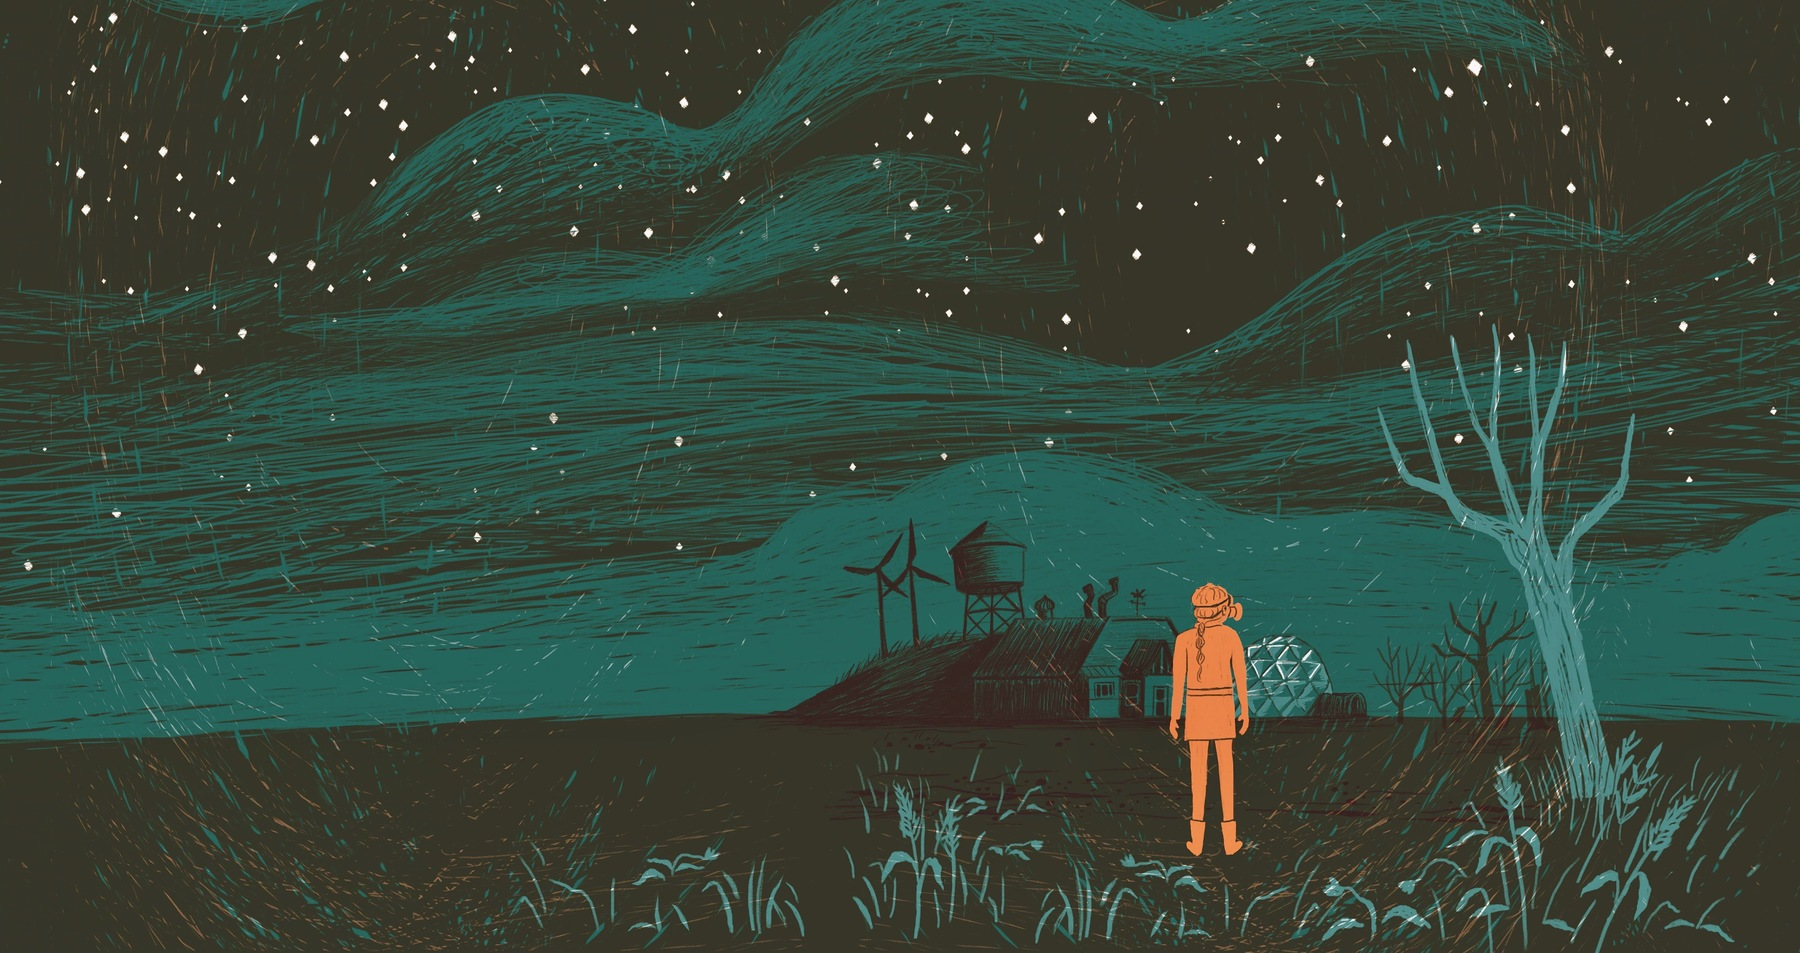 illustration of woman standing under stars